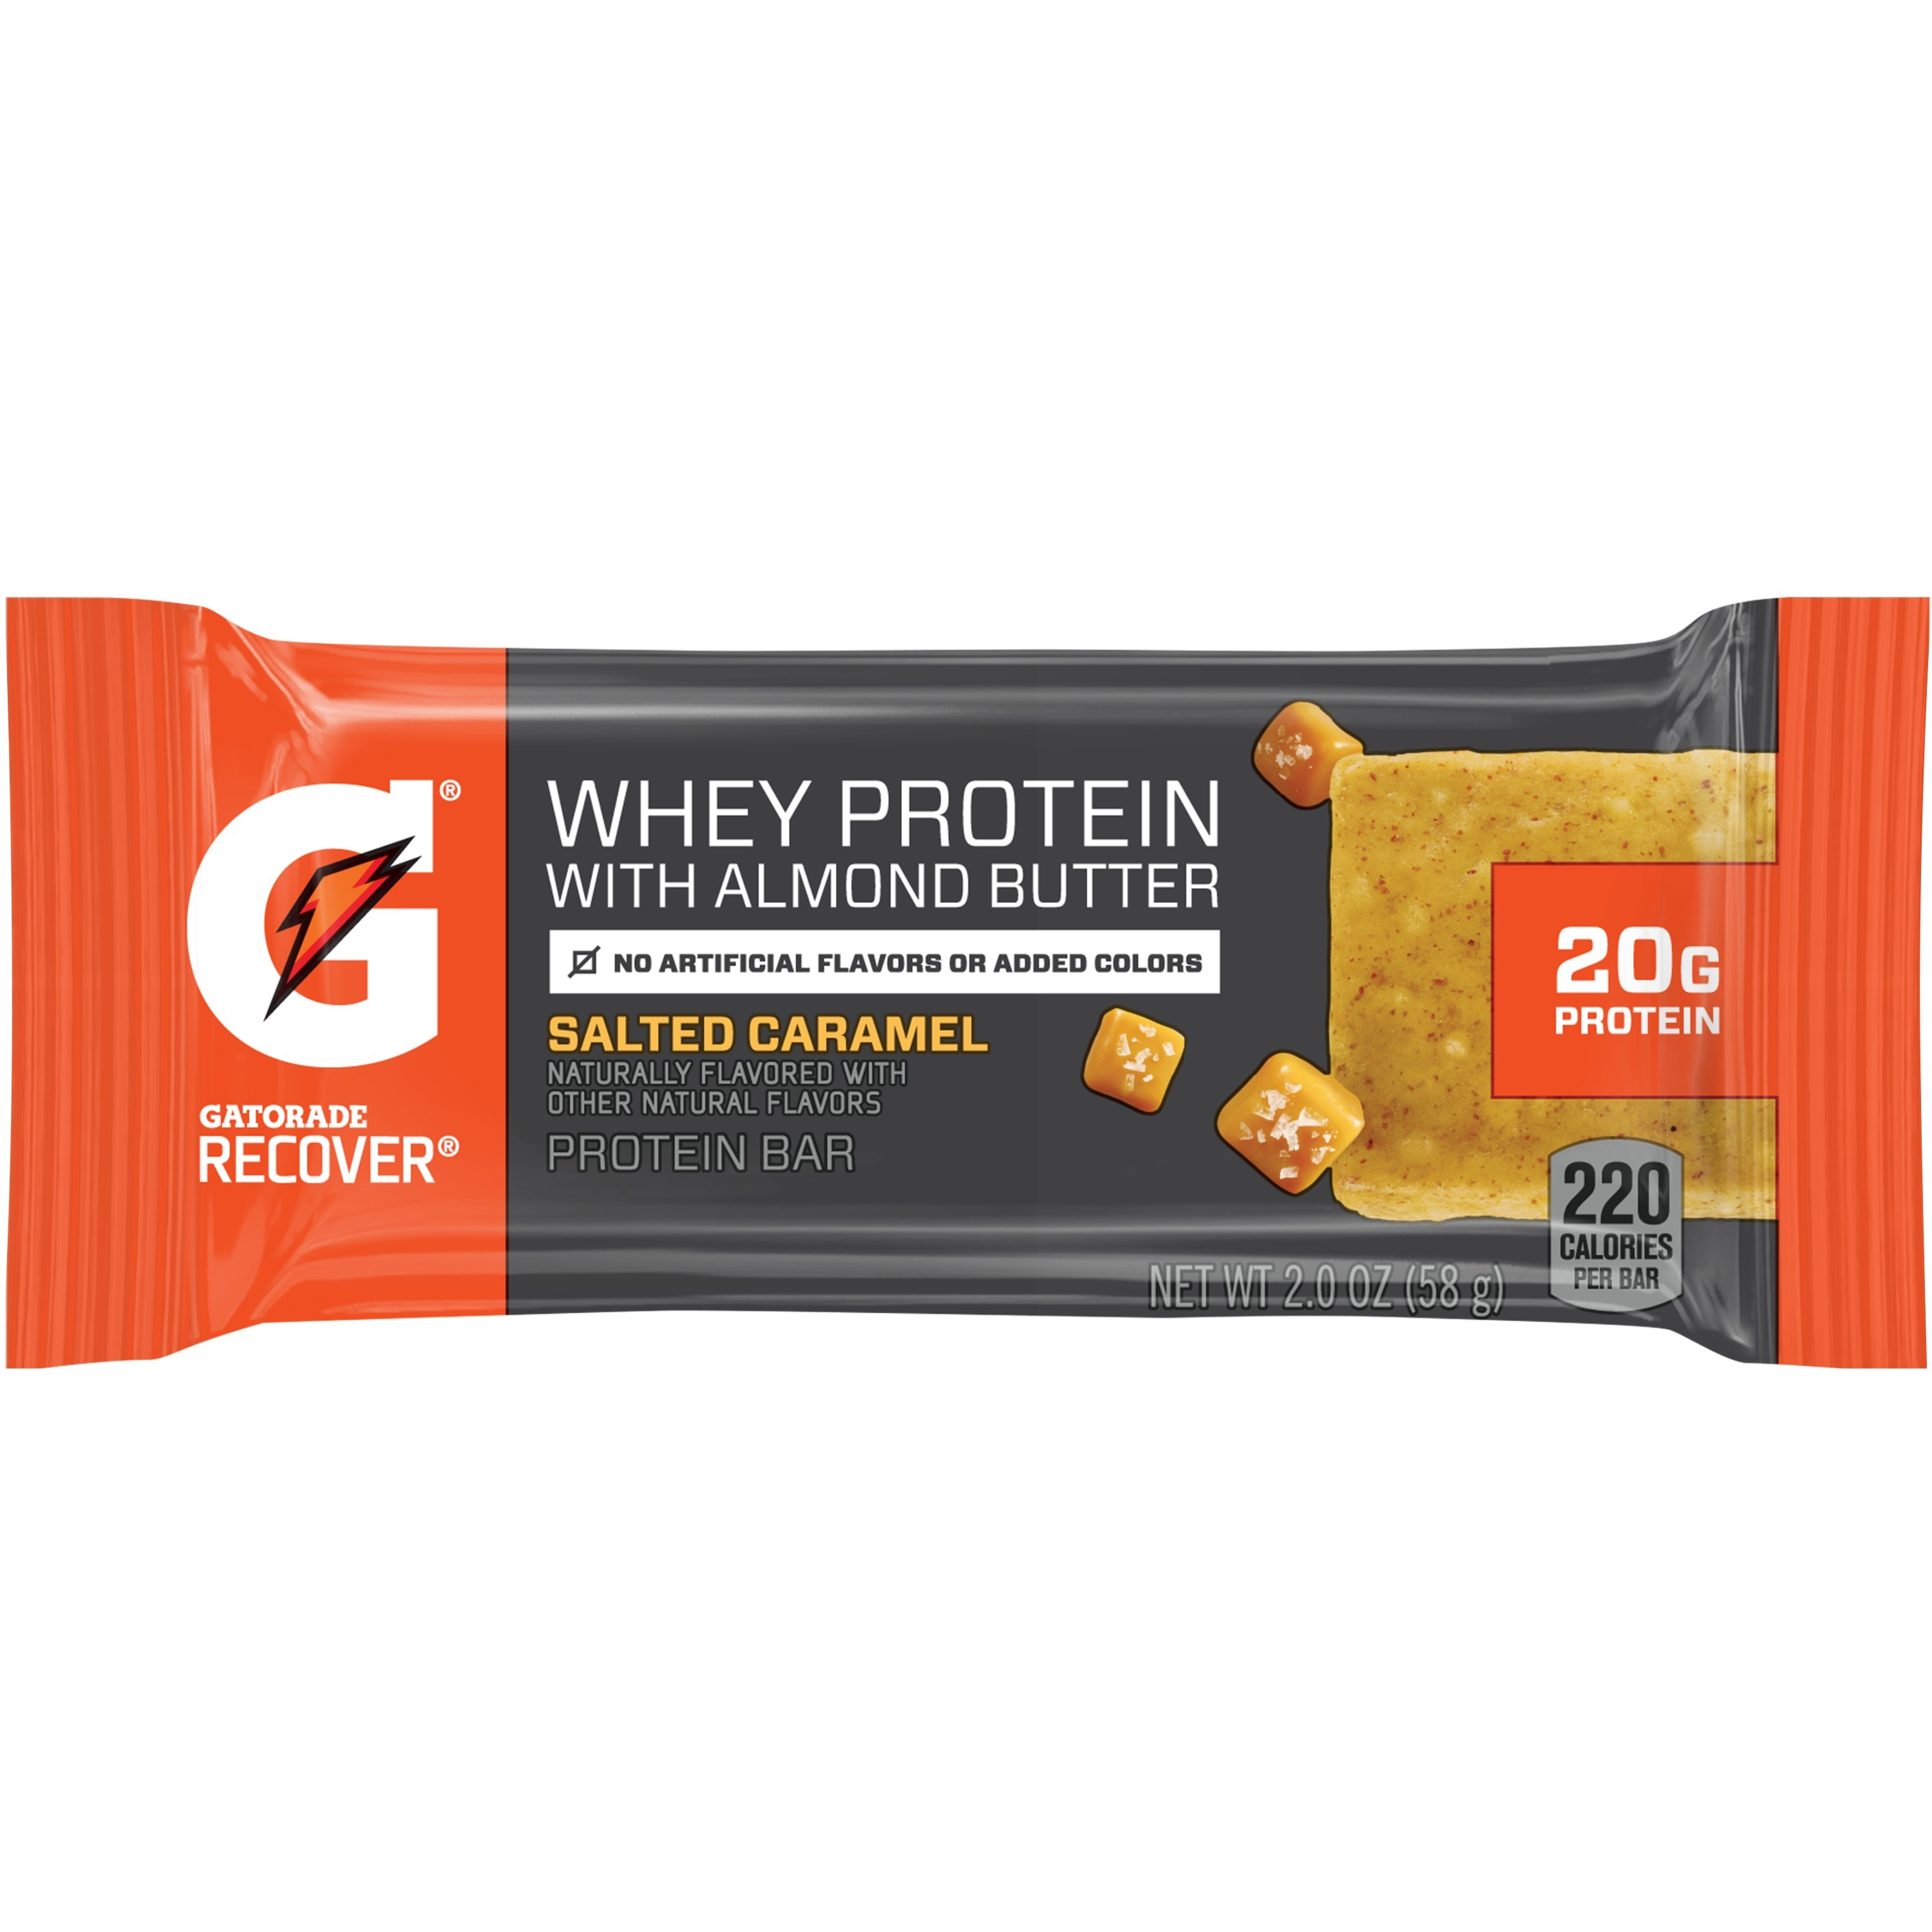 Gatorade Whey Protein with Almond Butter Salted Caramel Bar, 2.1 Oz.